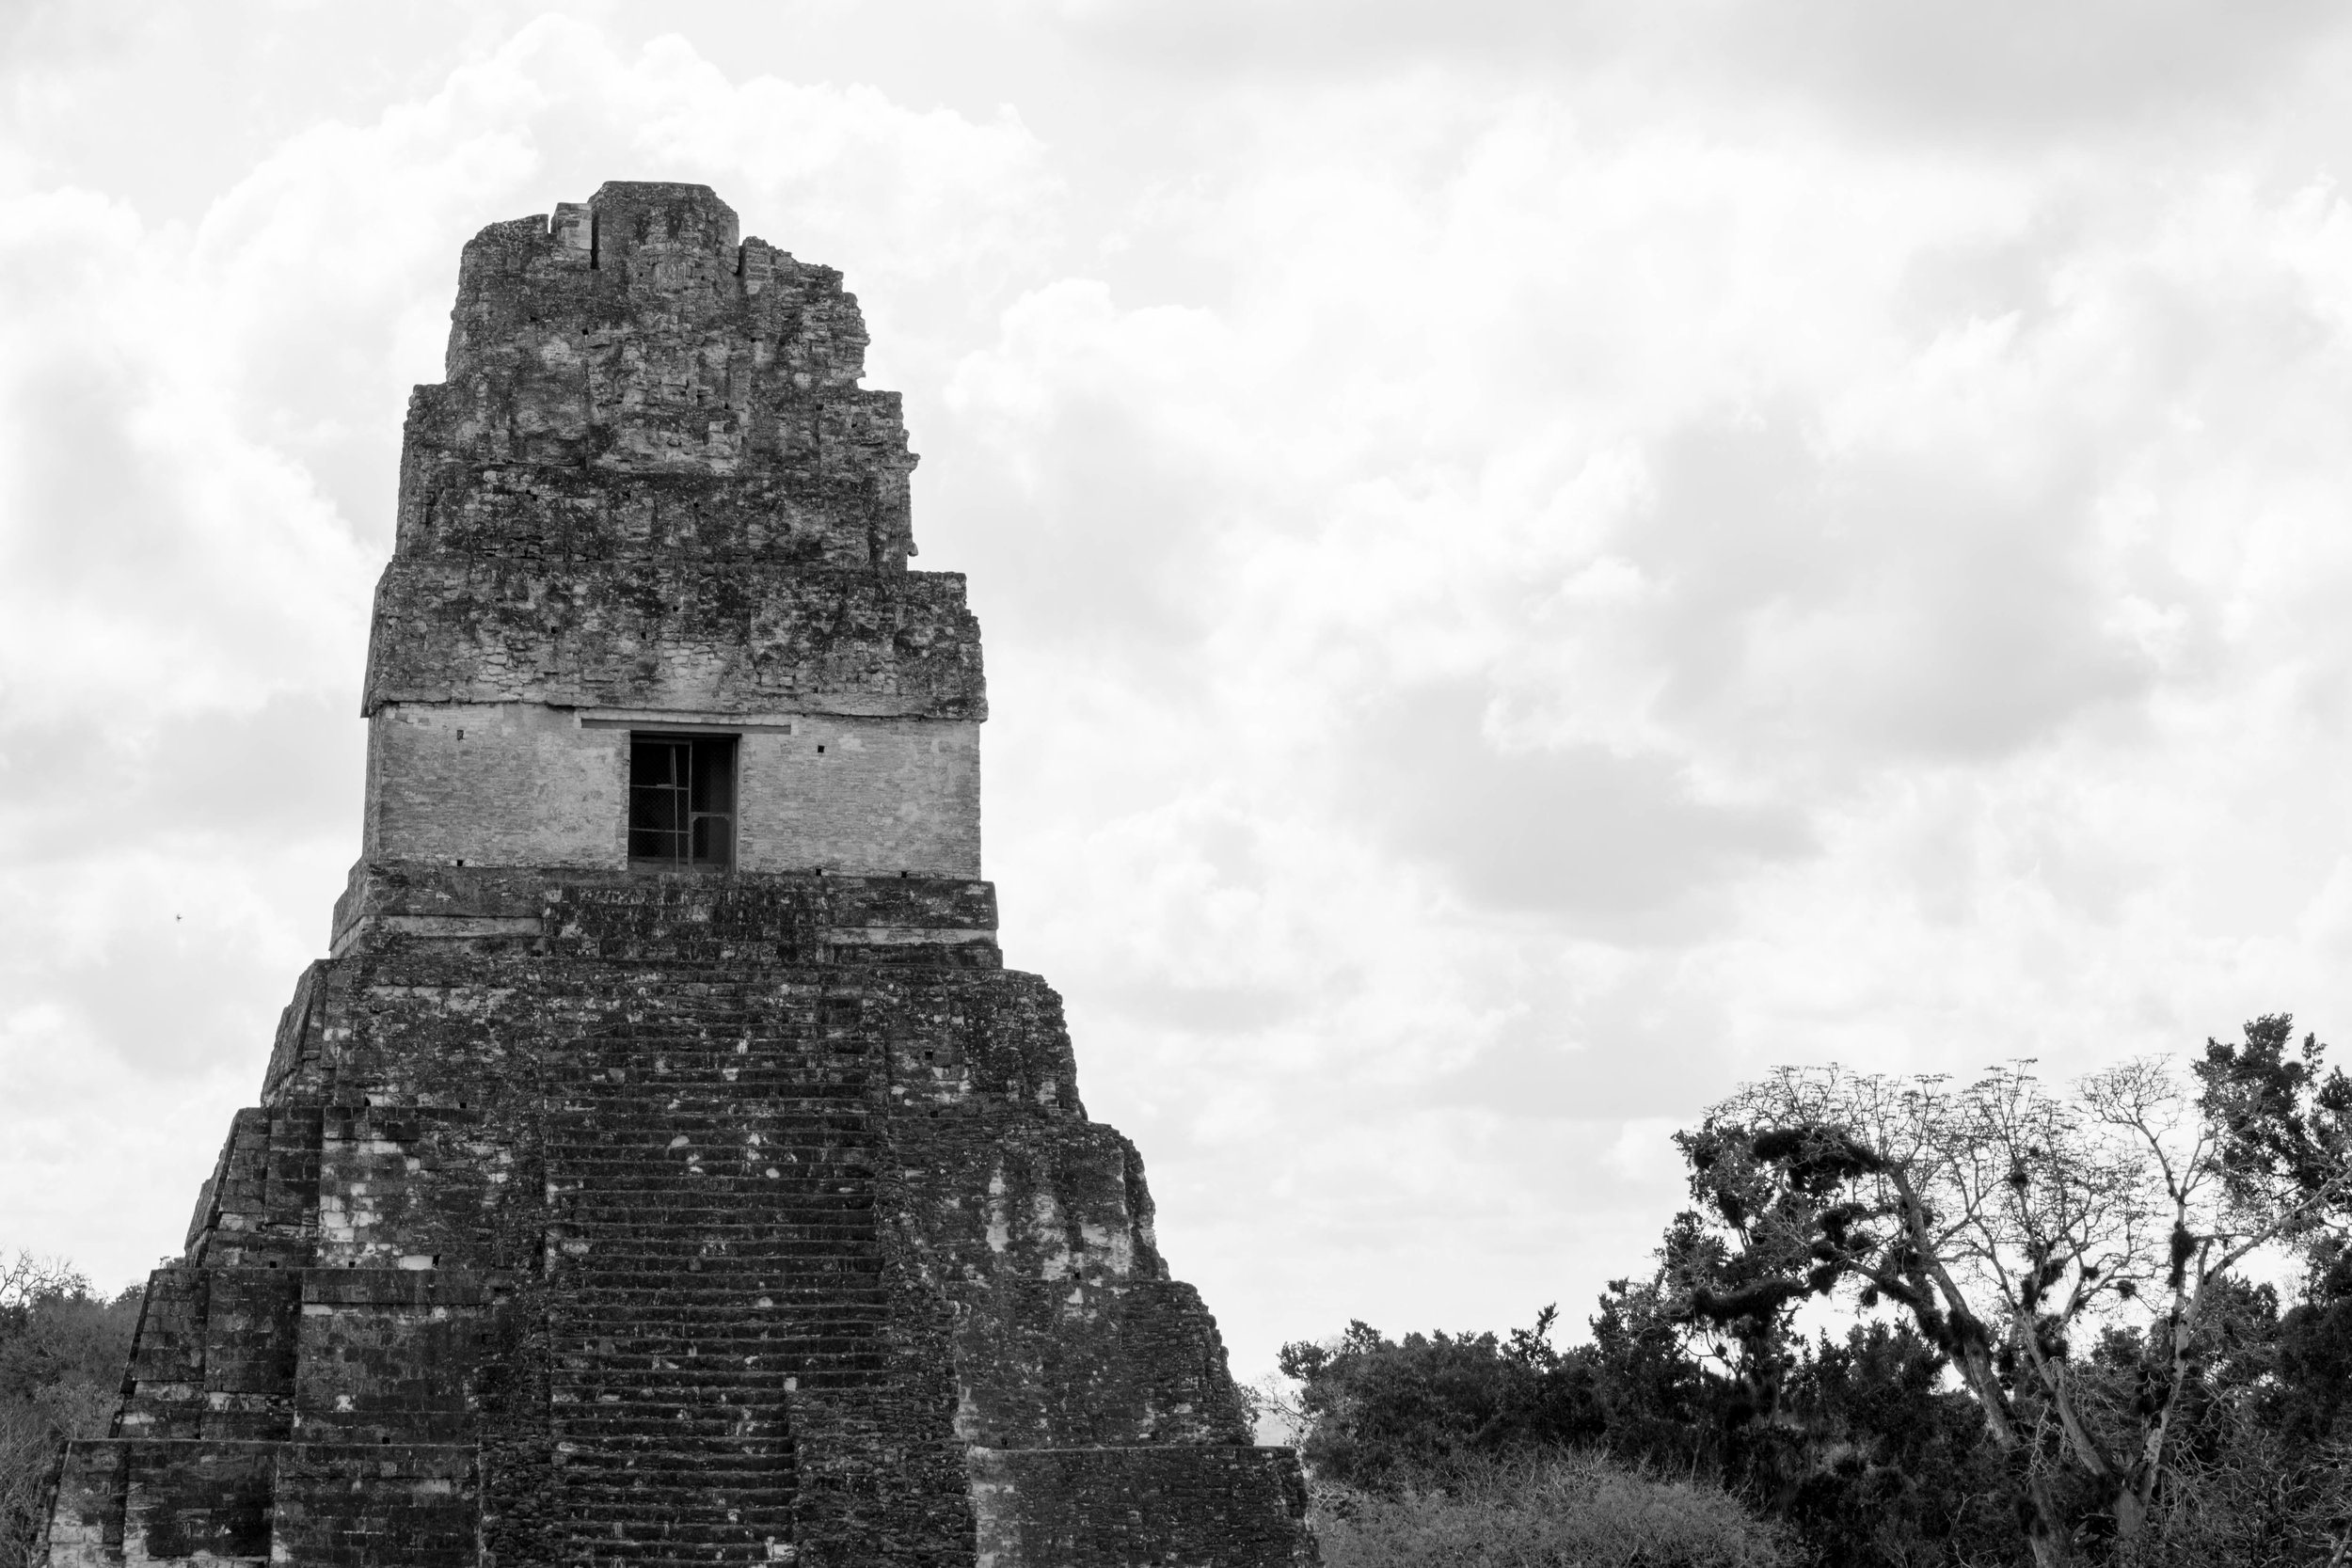 A Temple Visible Above the Jungle in Tikal, Guatemala